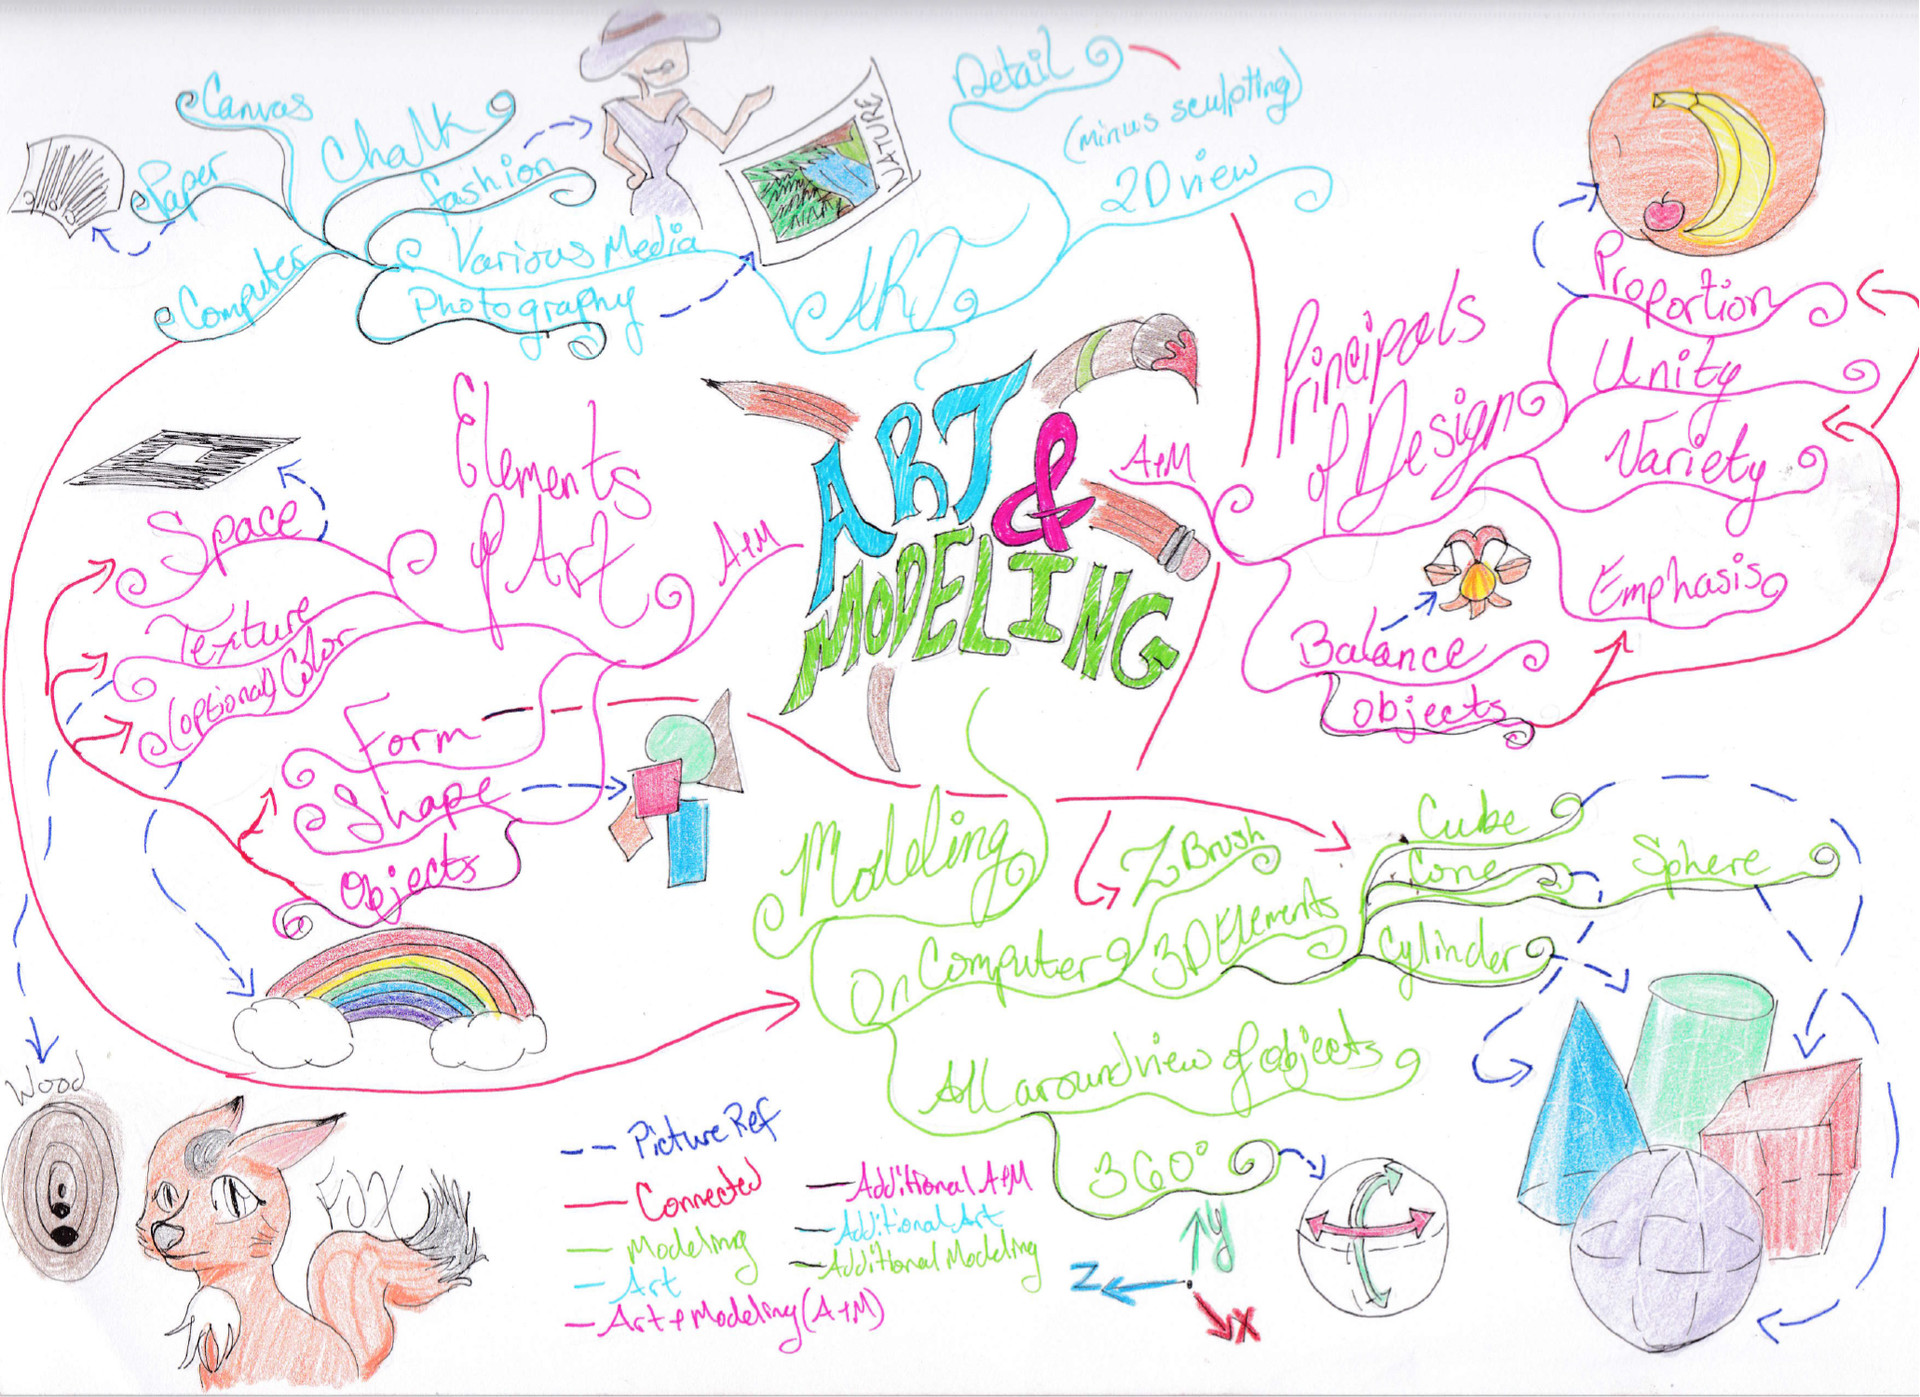 Completed Mind Map